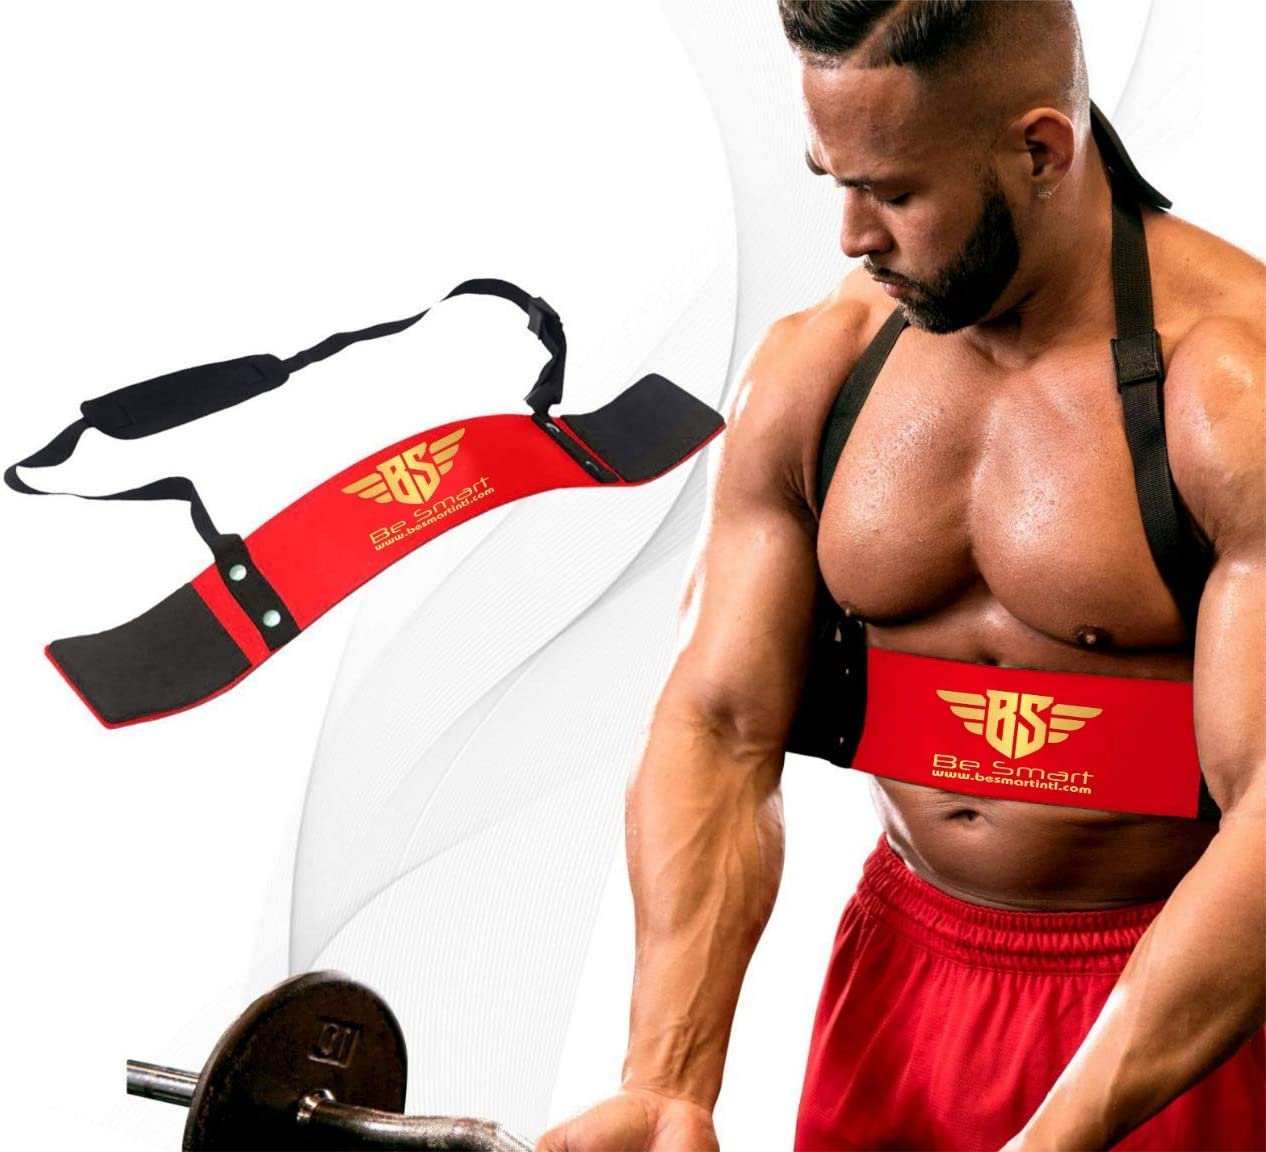 BeSmart Arm Blaster for Biceps & Triceps Dumbbells & Barbells Curls Muscle Builder Bicep Isolator for Big Arms Bodybuilding & Weight Lifting Support for Strength & Muscle Gains by Be Smart